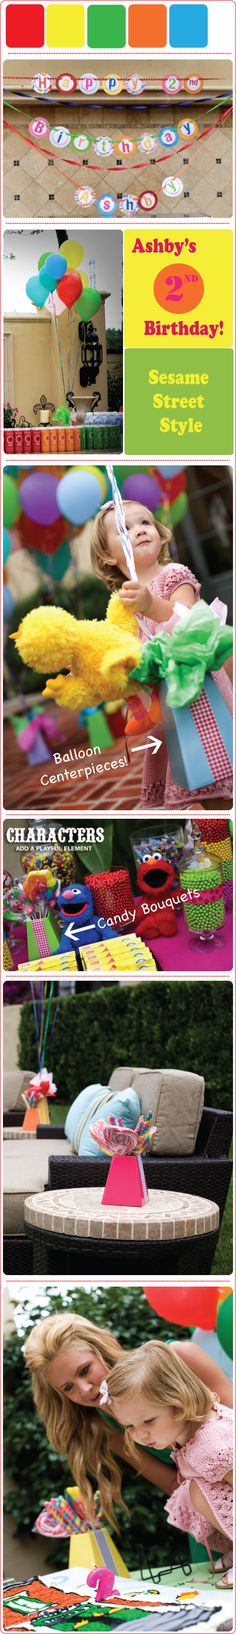 Sesame Street Party - Find more Sesame Street Birthday Party Ideas at http://www.birthdayinabox.com/party-ideas/guides.asp?bgs=68